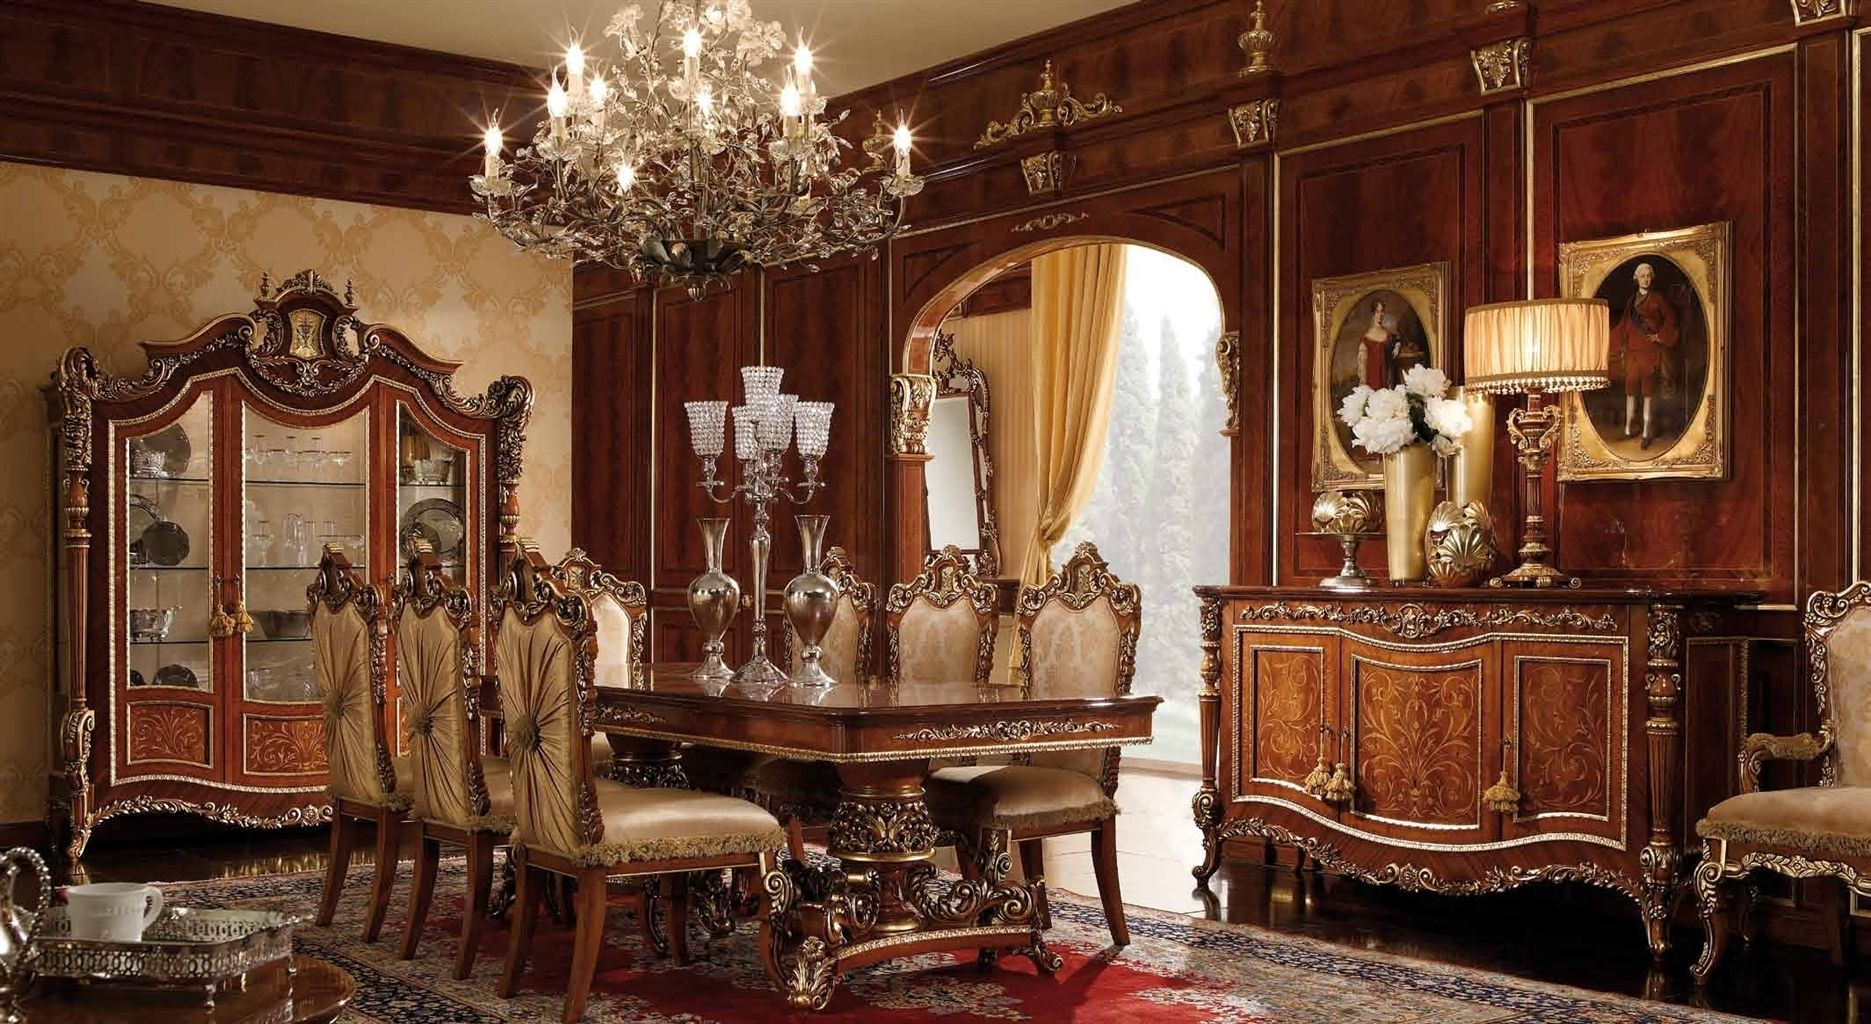 Luxury Dining Room Furniture  Httpfmufpi  Pinterest Prepossessing Luxury Dining Room Furniture Design Inspiration